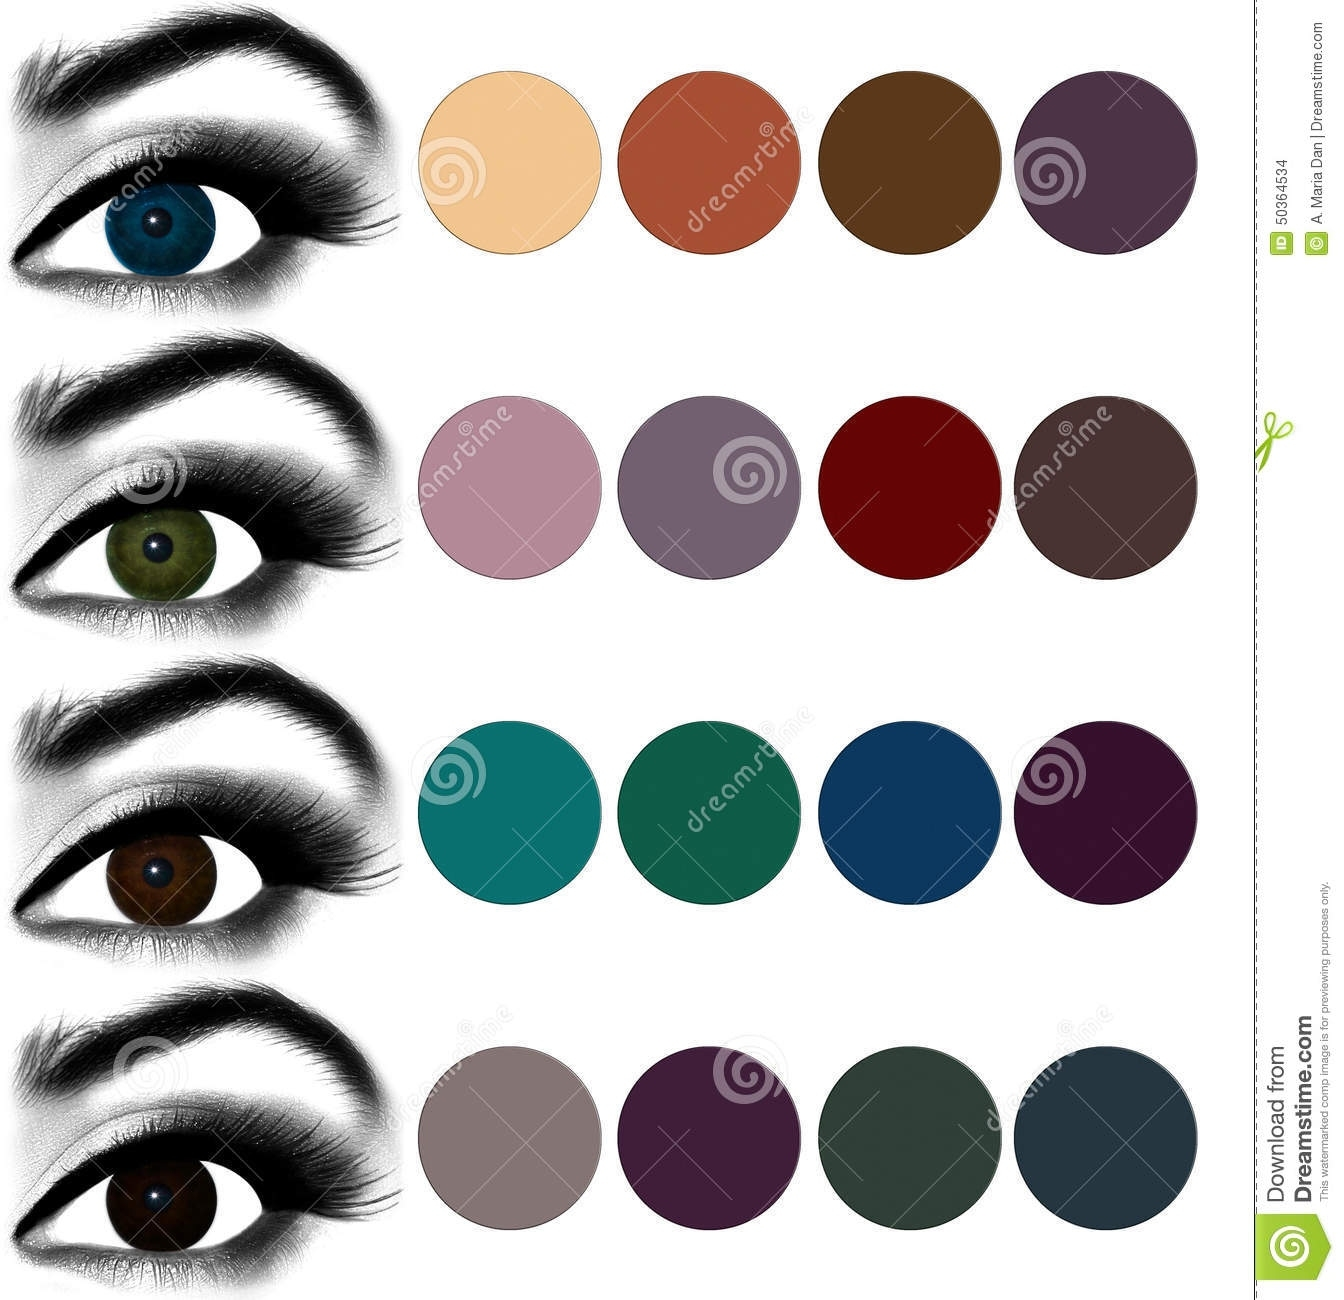 Eyes Makeup.matching Eyeshadow To Eye Color. Stock Photo - Image Of within Best Color Eyeshadow For Blue Green Eyes